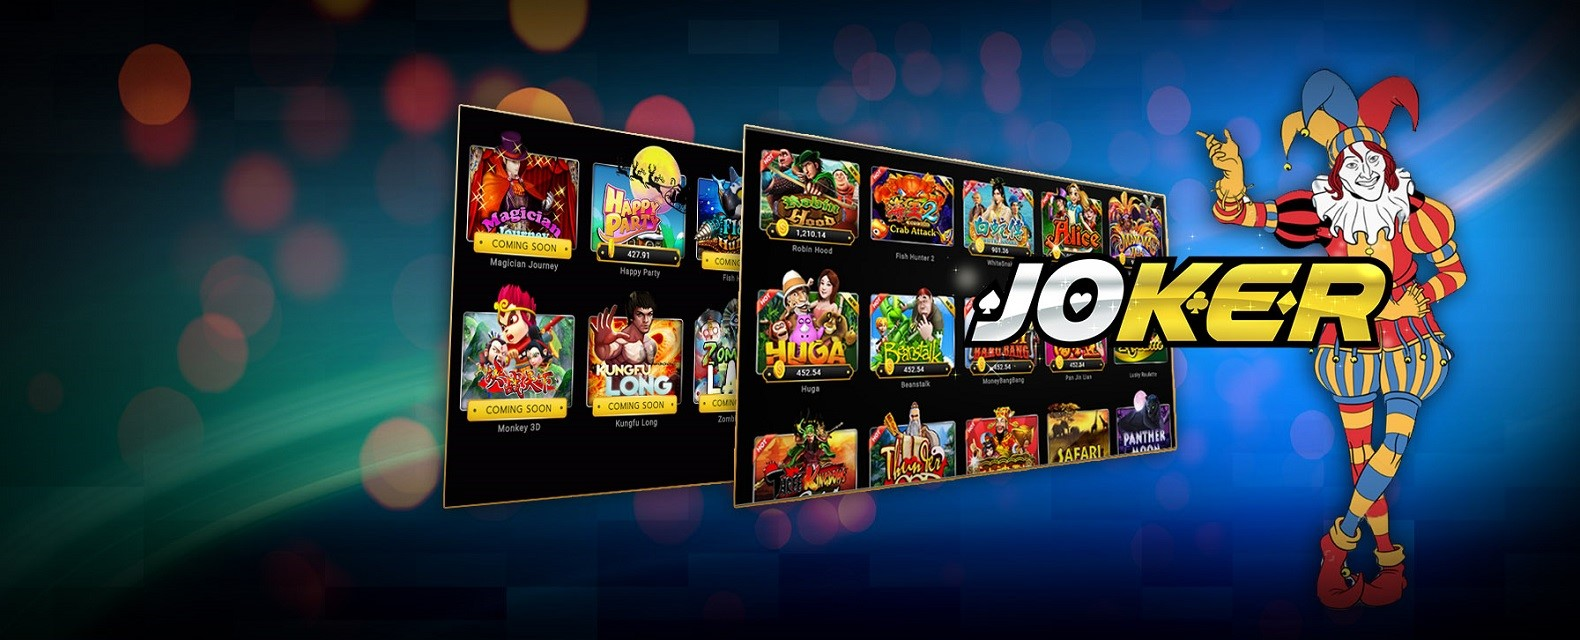 Want to play gambling matches online? – try joker123!